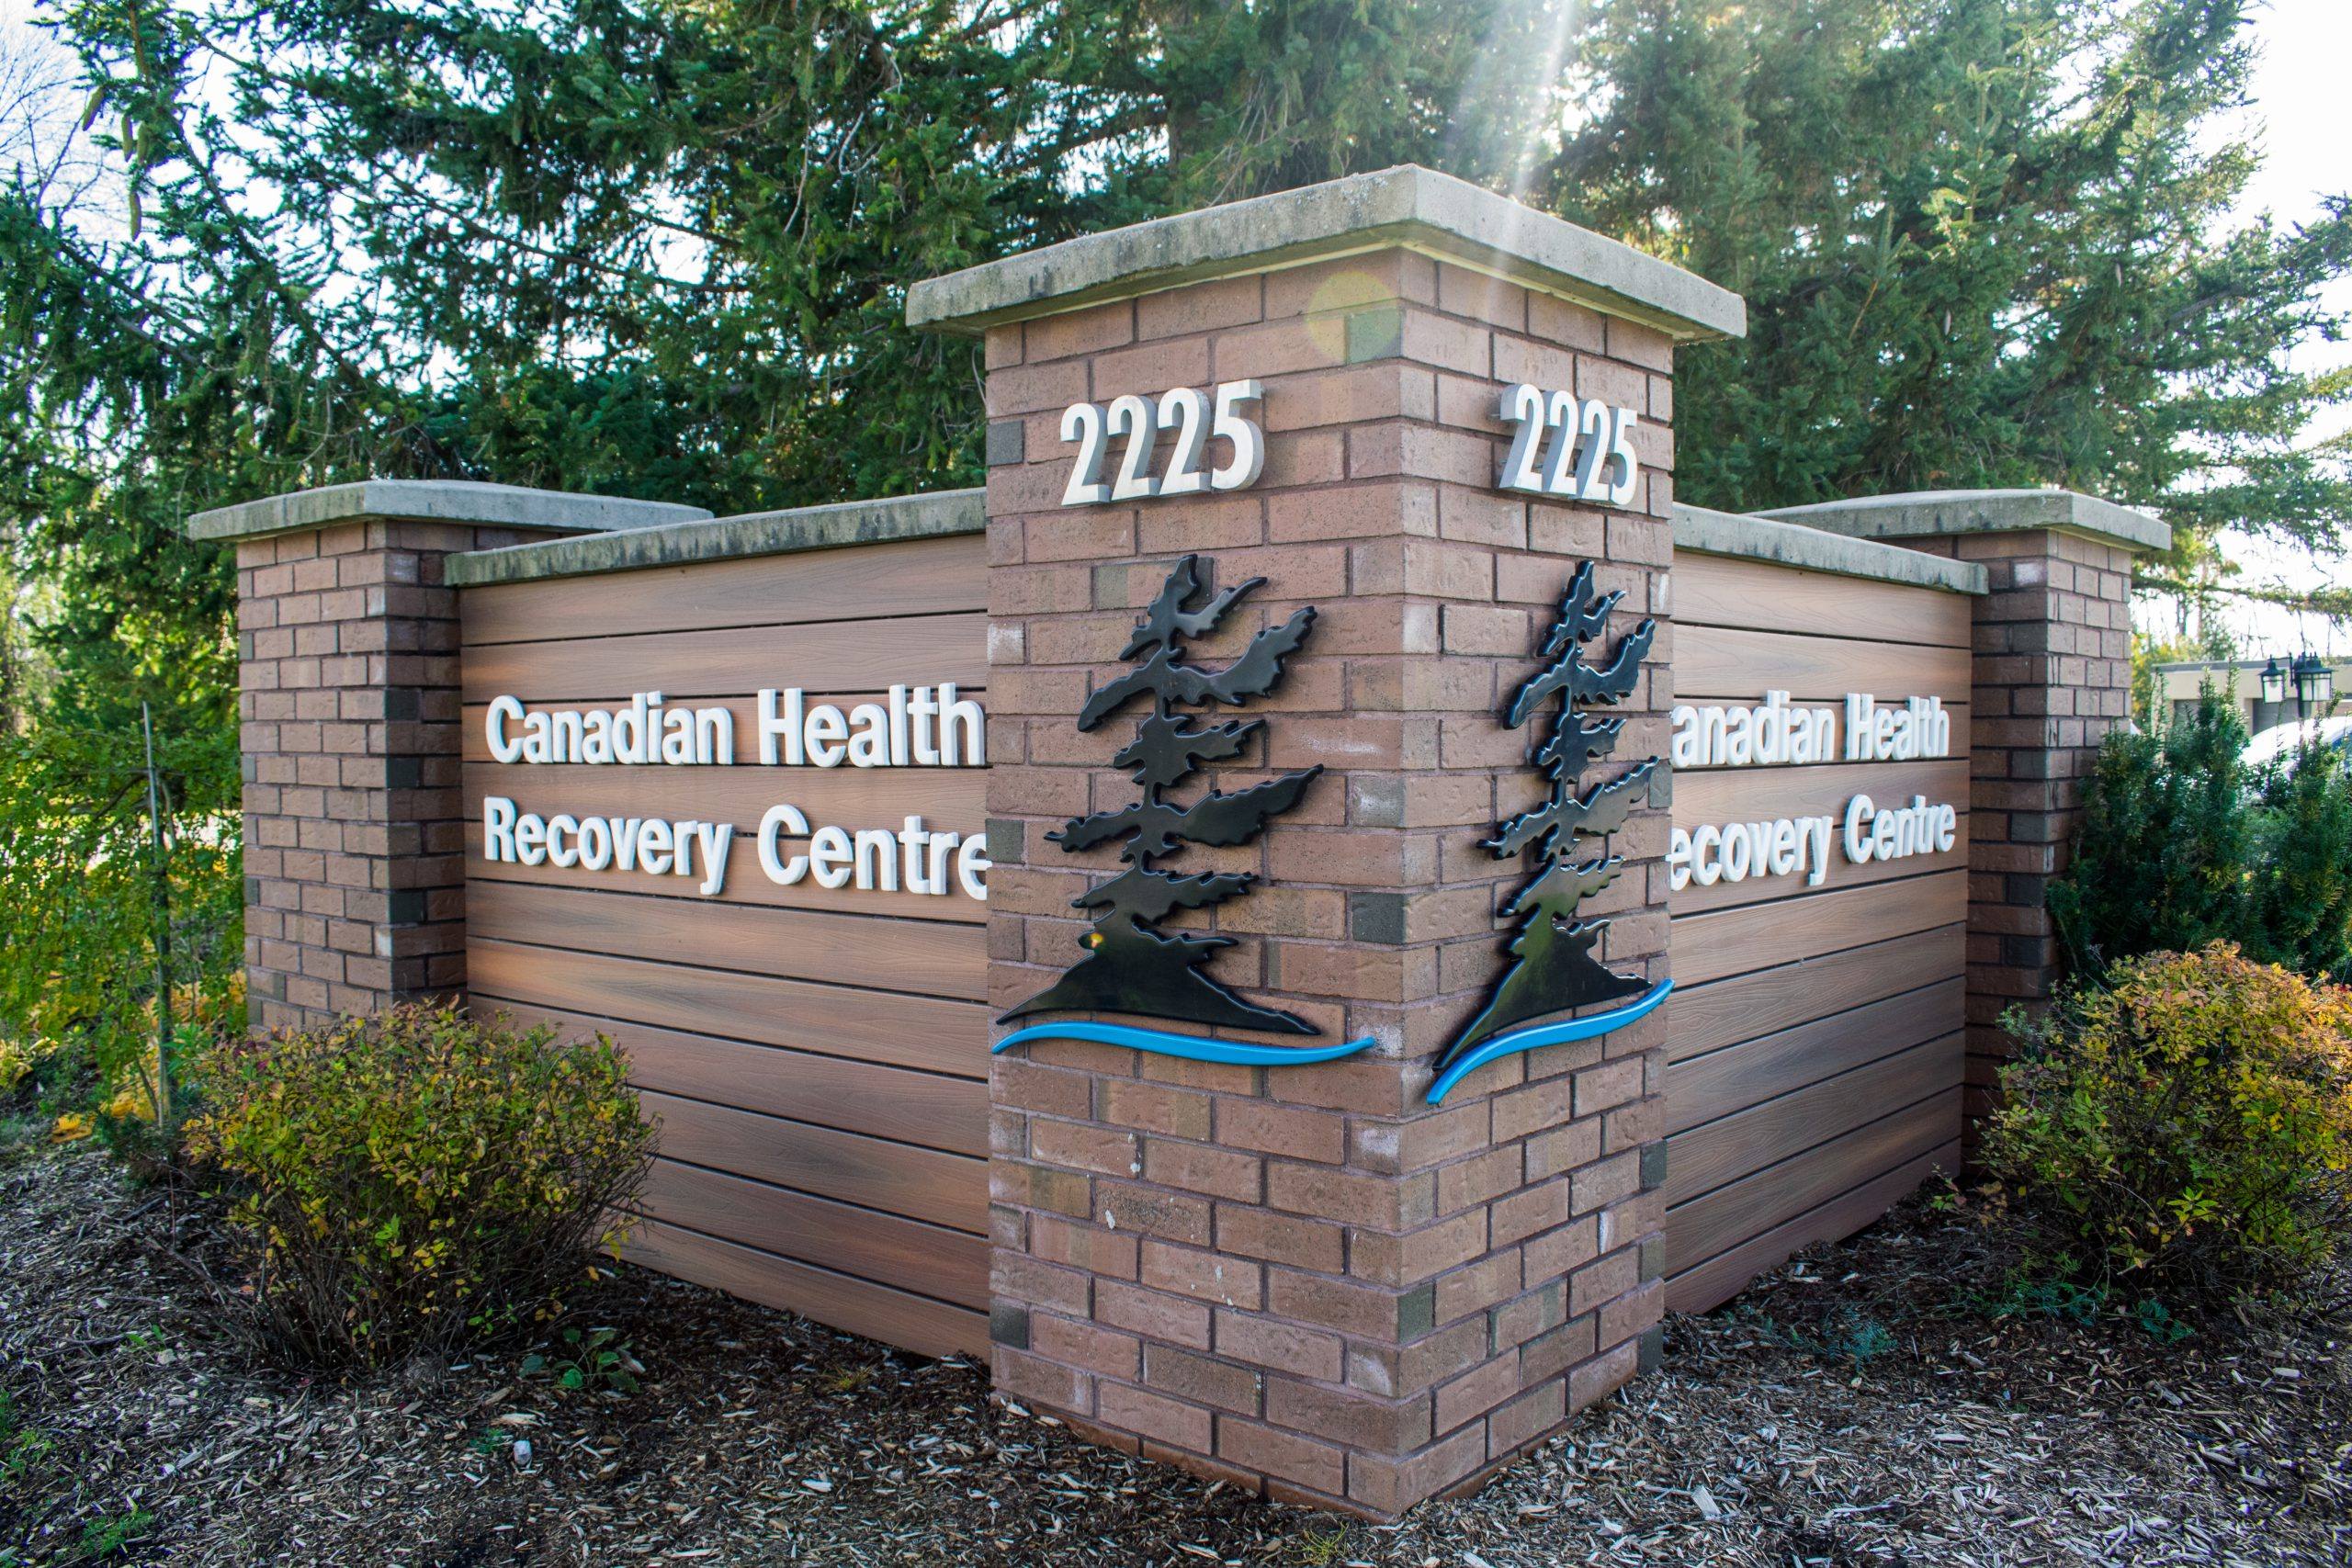 Front View of Canadian Health Recovery Centre